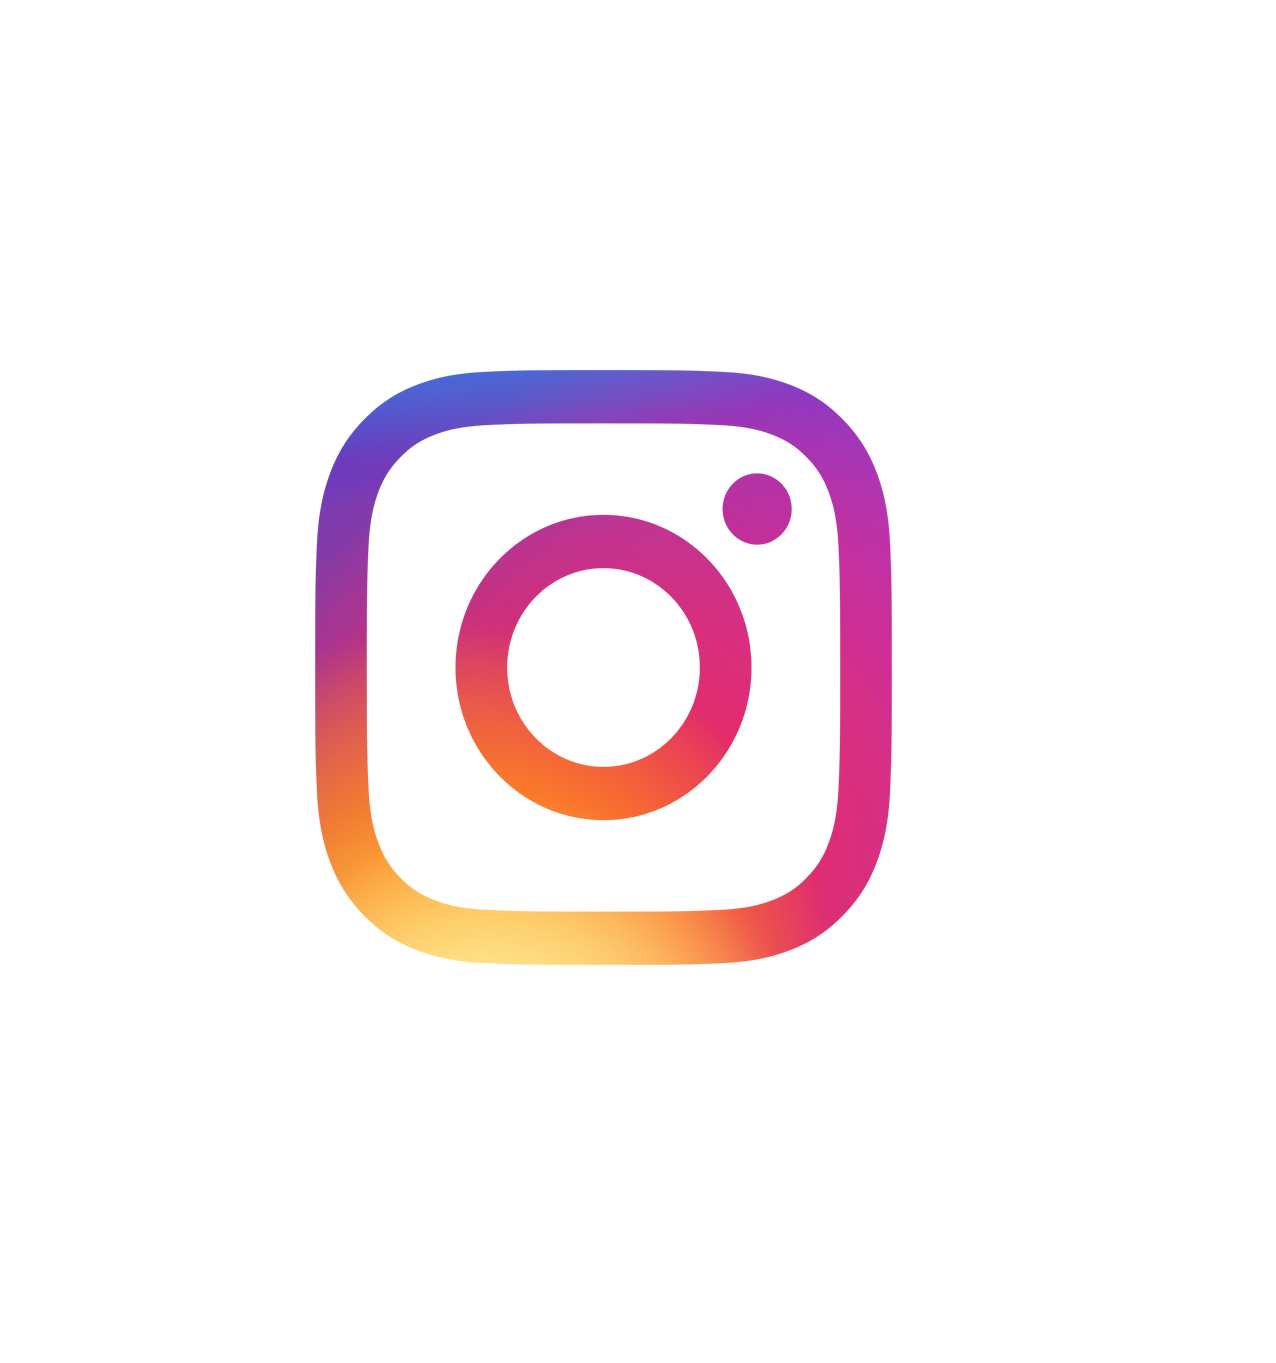 instagram_small.png